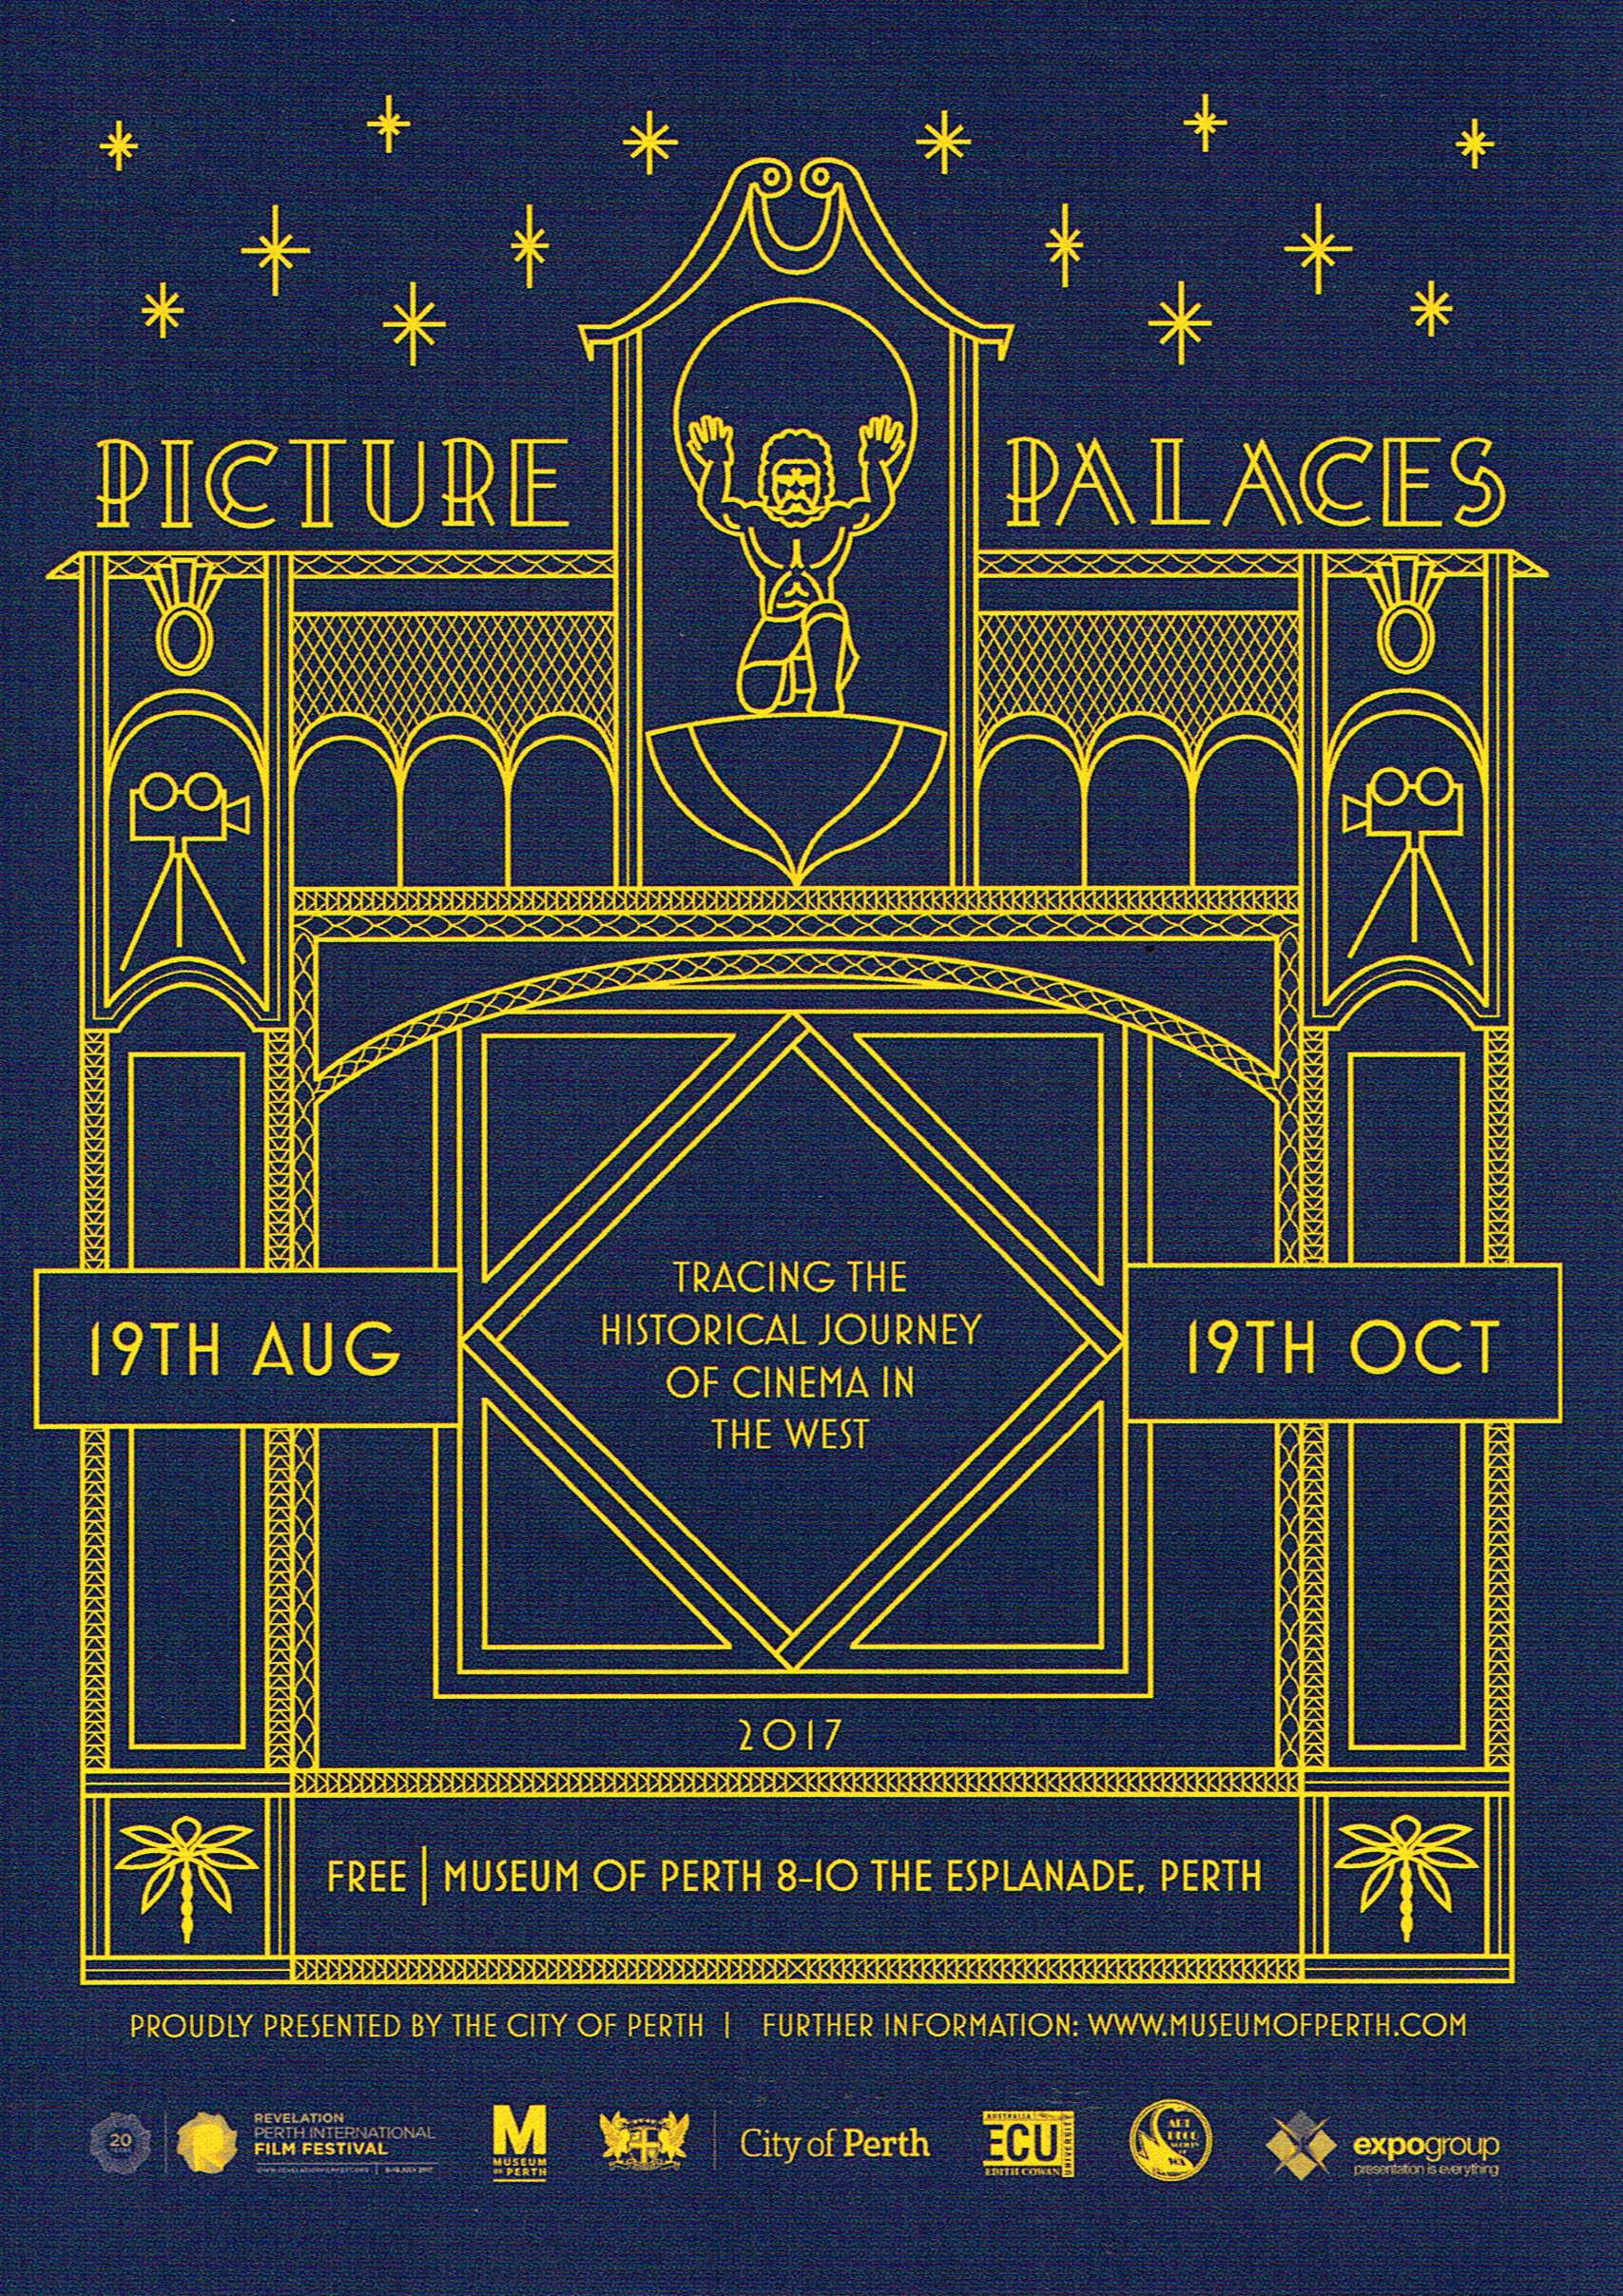 Picture Palaces flyer07092017.jpg